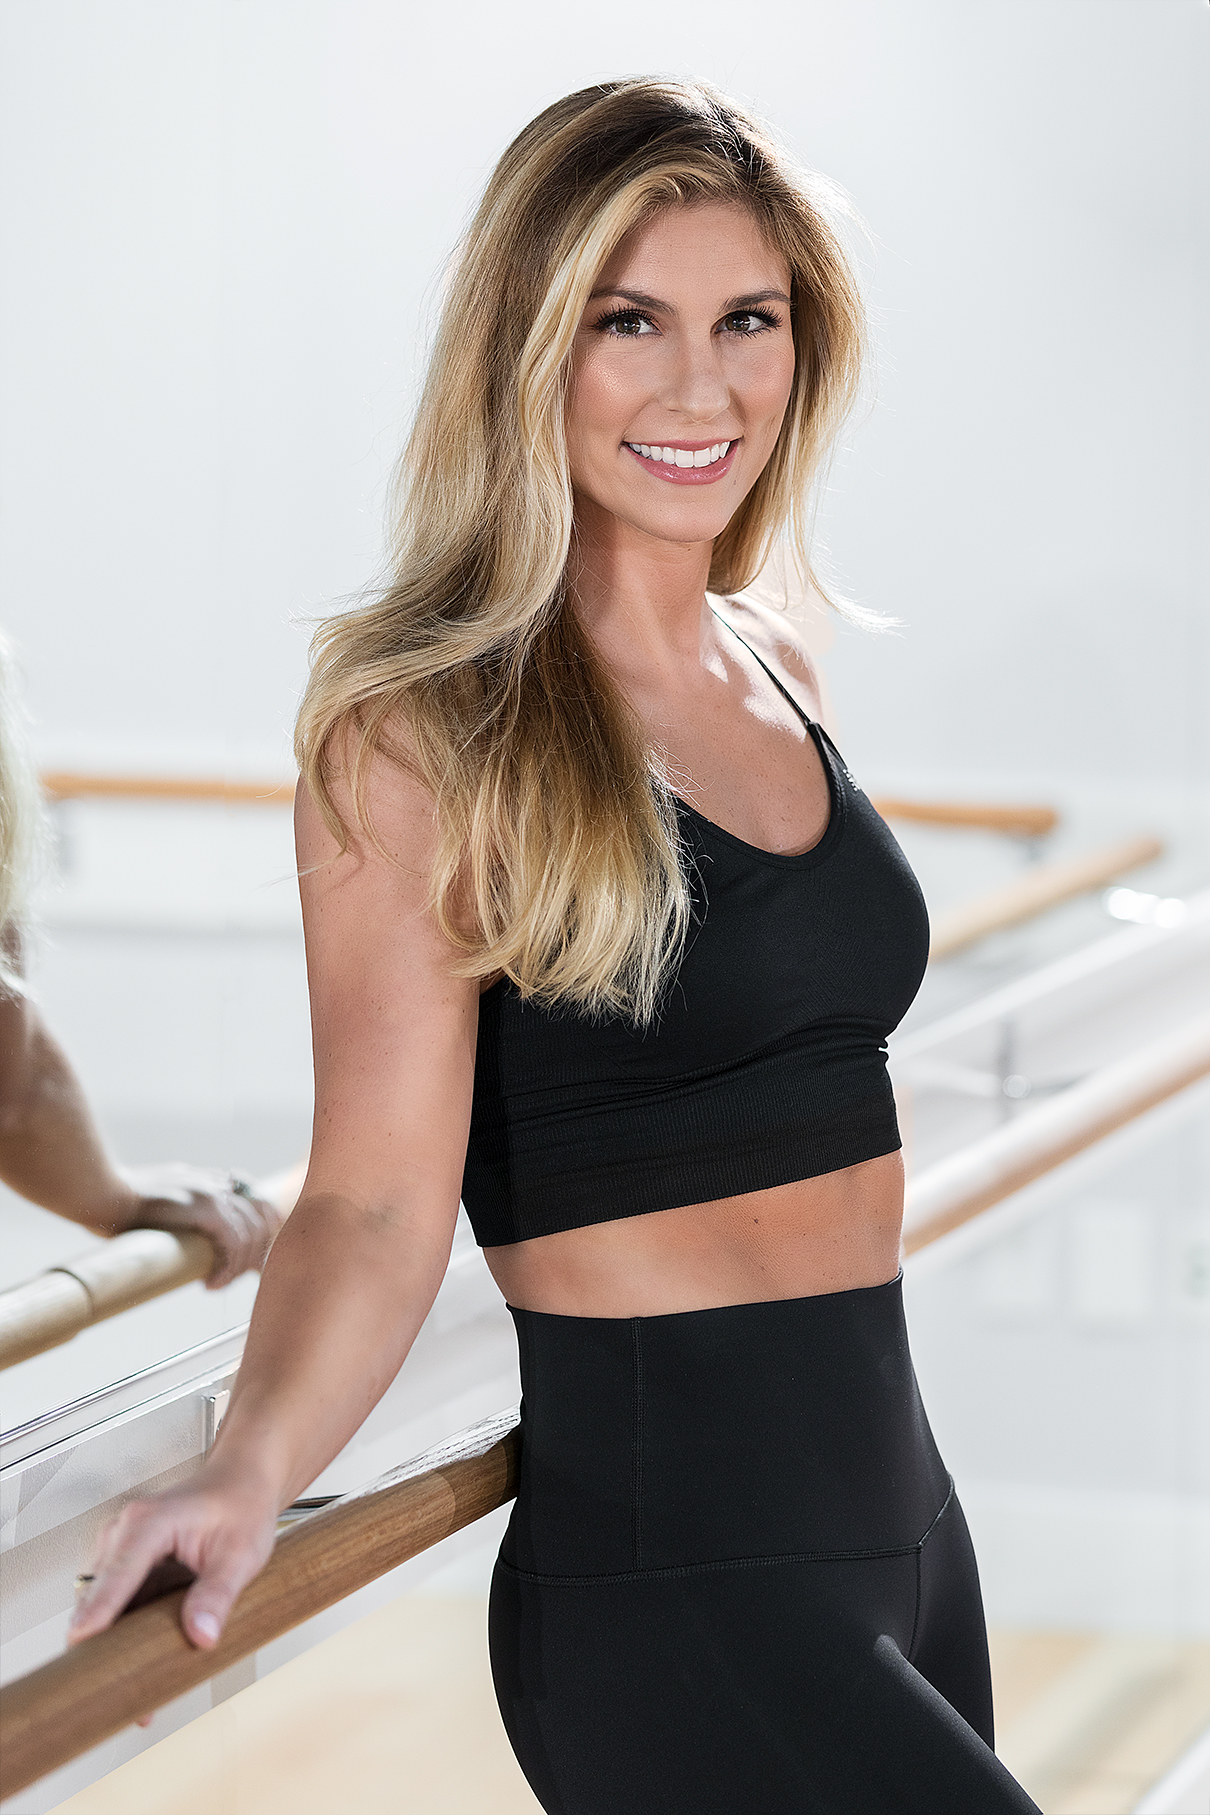 "Michelle Nigro Kenyon   Michelle is Town Barre's owner and lead instructor. She started Town Barre in October of 2015 renting out of various gyms and shortly thereafter quit her job in public relations to pursue a career teaching barre full time. In March of of 2017 she opened Town Barre's first studio.  Prior to working in PR, Michelle graduated from Emerson College with a degree in journalism and was a New England Patriots Cheerleader from 2010 to 2015. During her time on the team, she cheered from the sidelines at two Super Bowls and had the opportunity to represented the NFL at the Nike Festival of Sports in Shanghai.  Michelle started taking barre while trying to get in shape for Super Bowl XLIX. Soon enough, she started looking forward to working out, when prior, workouts were necessary but by no means enjoyable. Her newfound passion for barre led her to switch gears in her career path.  She's now working to provide her clients with the same benefits barre provided her. In a recent interview with ClassPass, Michelle said, ""I'm active every day, meet new people, help them reach their goals and provide them with an outlet to work on themselves."""